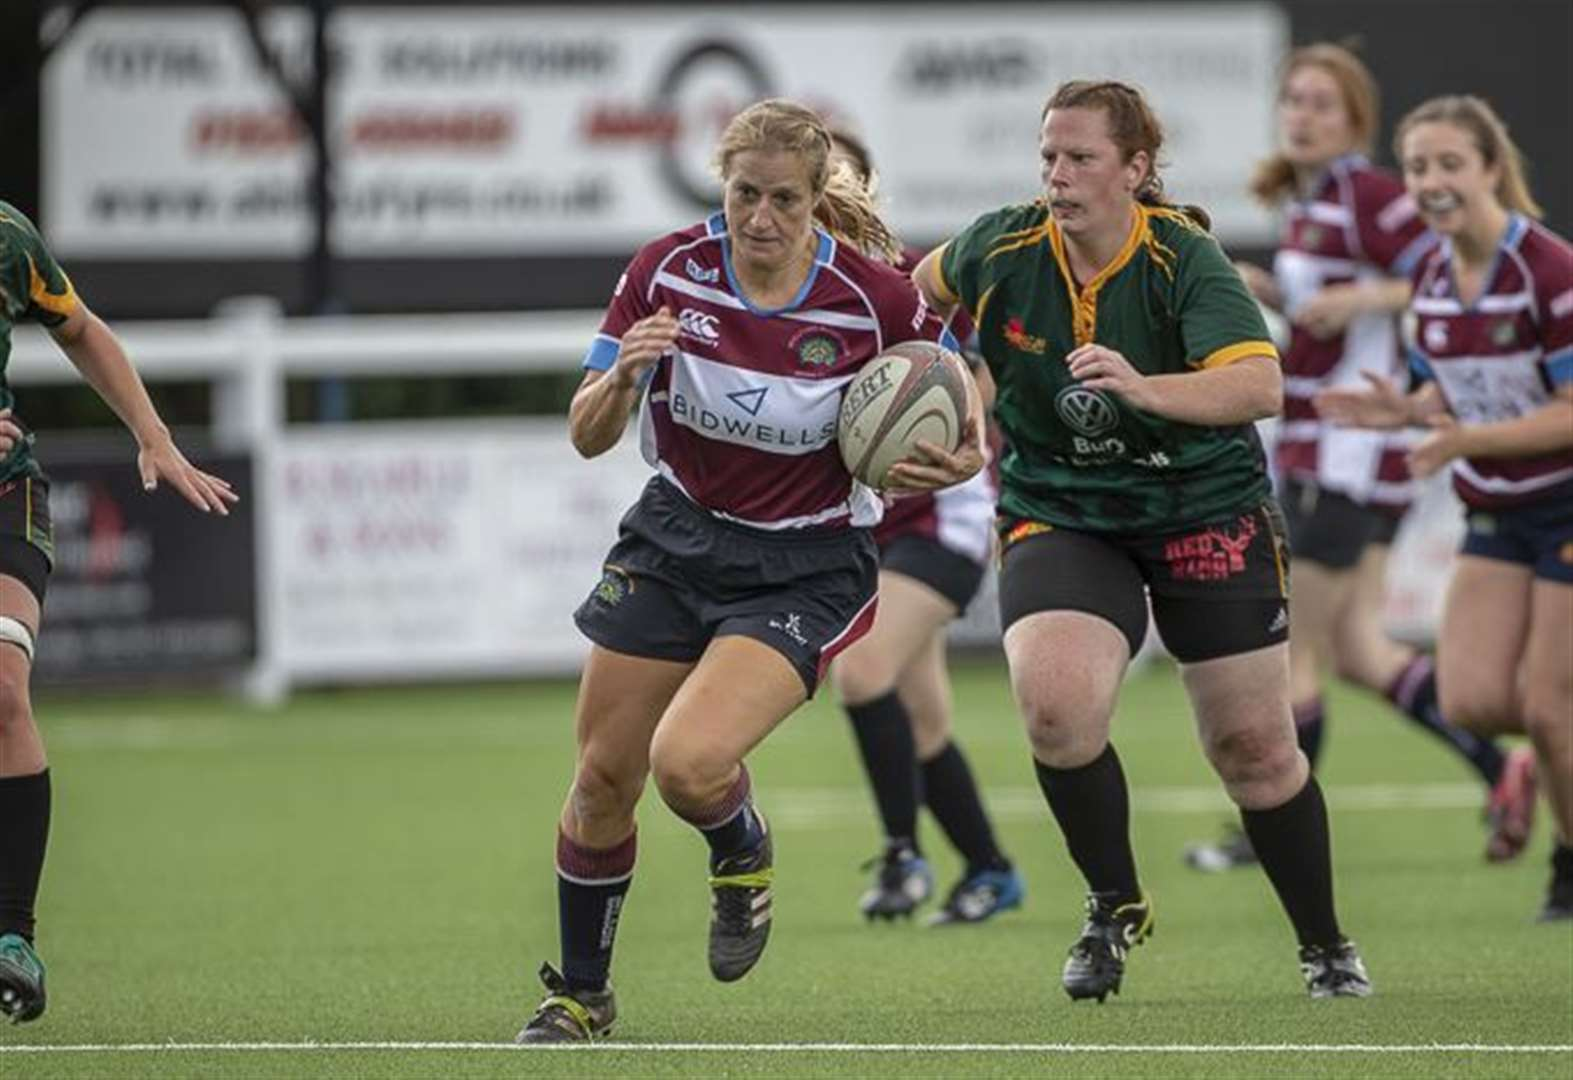 Charlie McLaughlin stars in Shelford Women's victory over Peterborough Lions